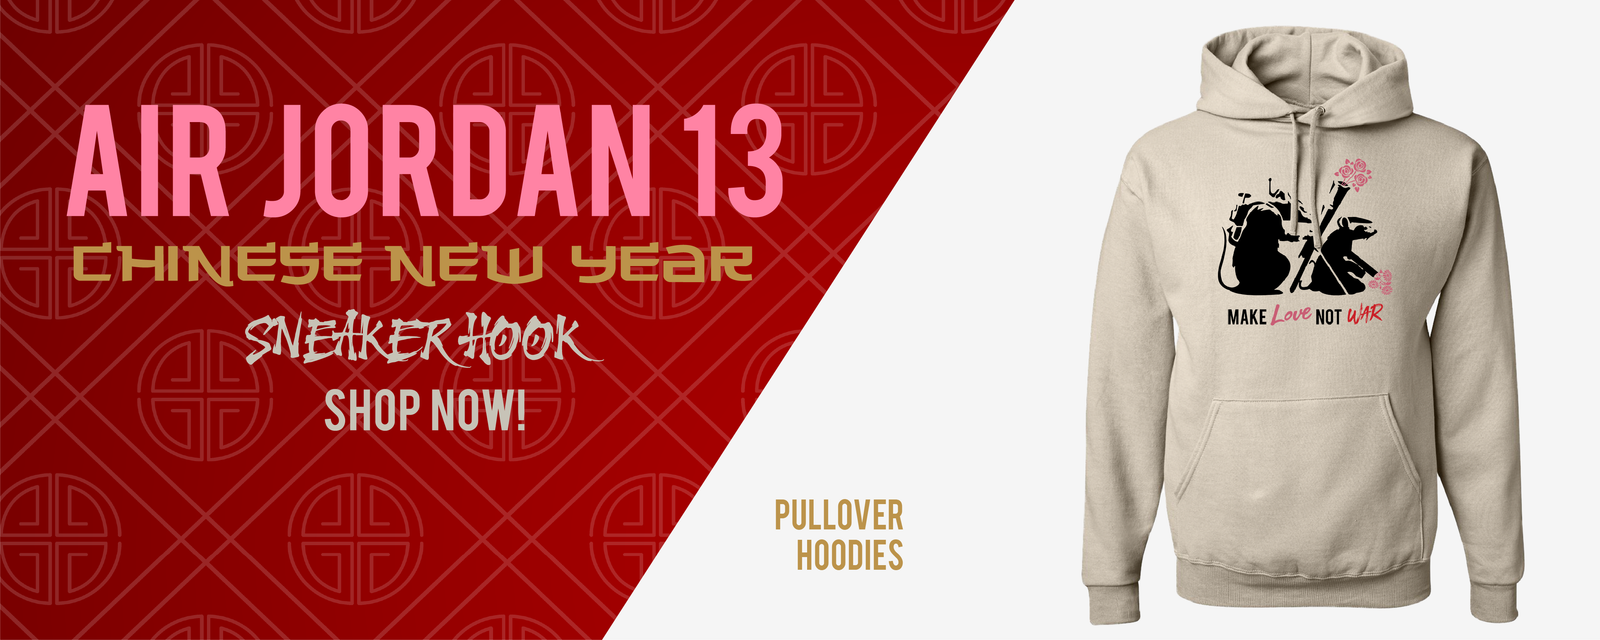 Hoodies Made to Match Air Jordan 13 Chinese New Year Sneakers